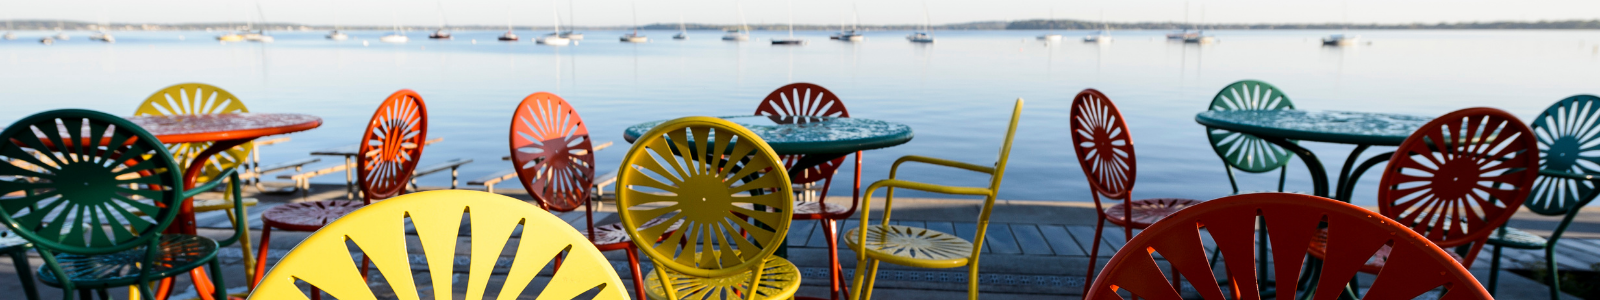 brightly colored chairs in front of a lake